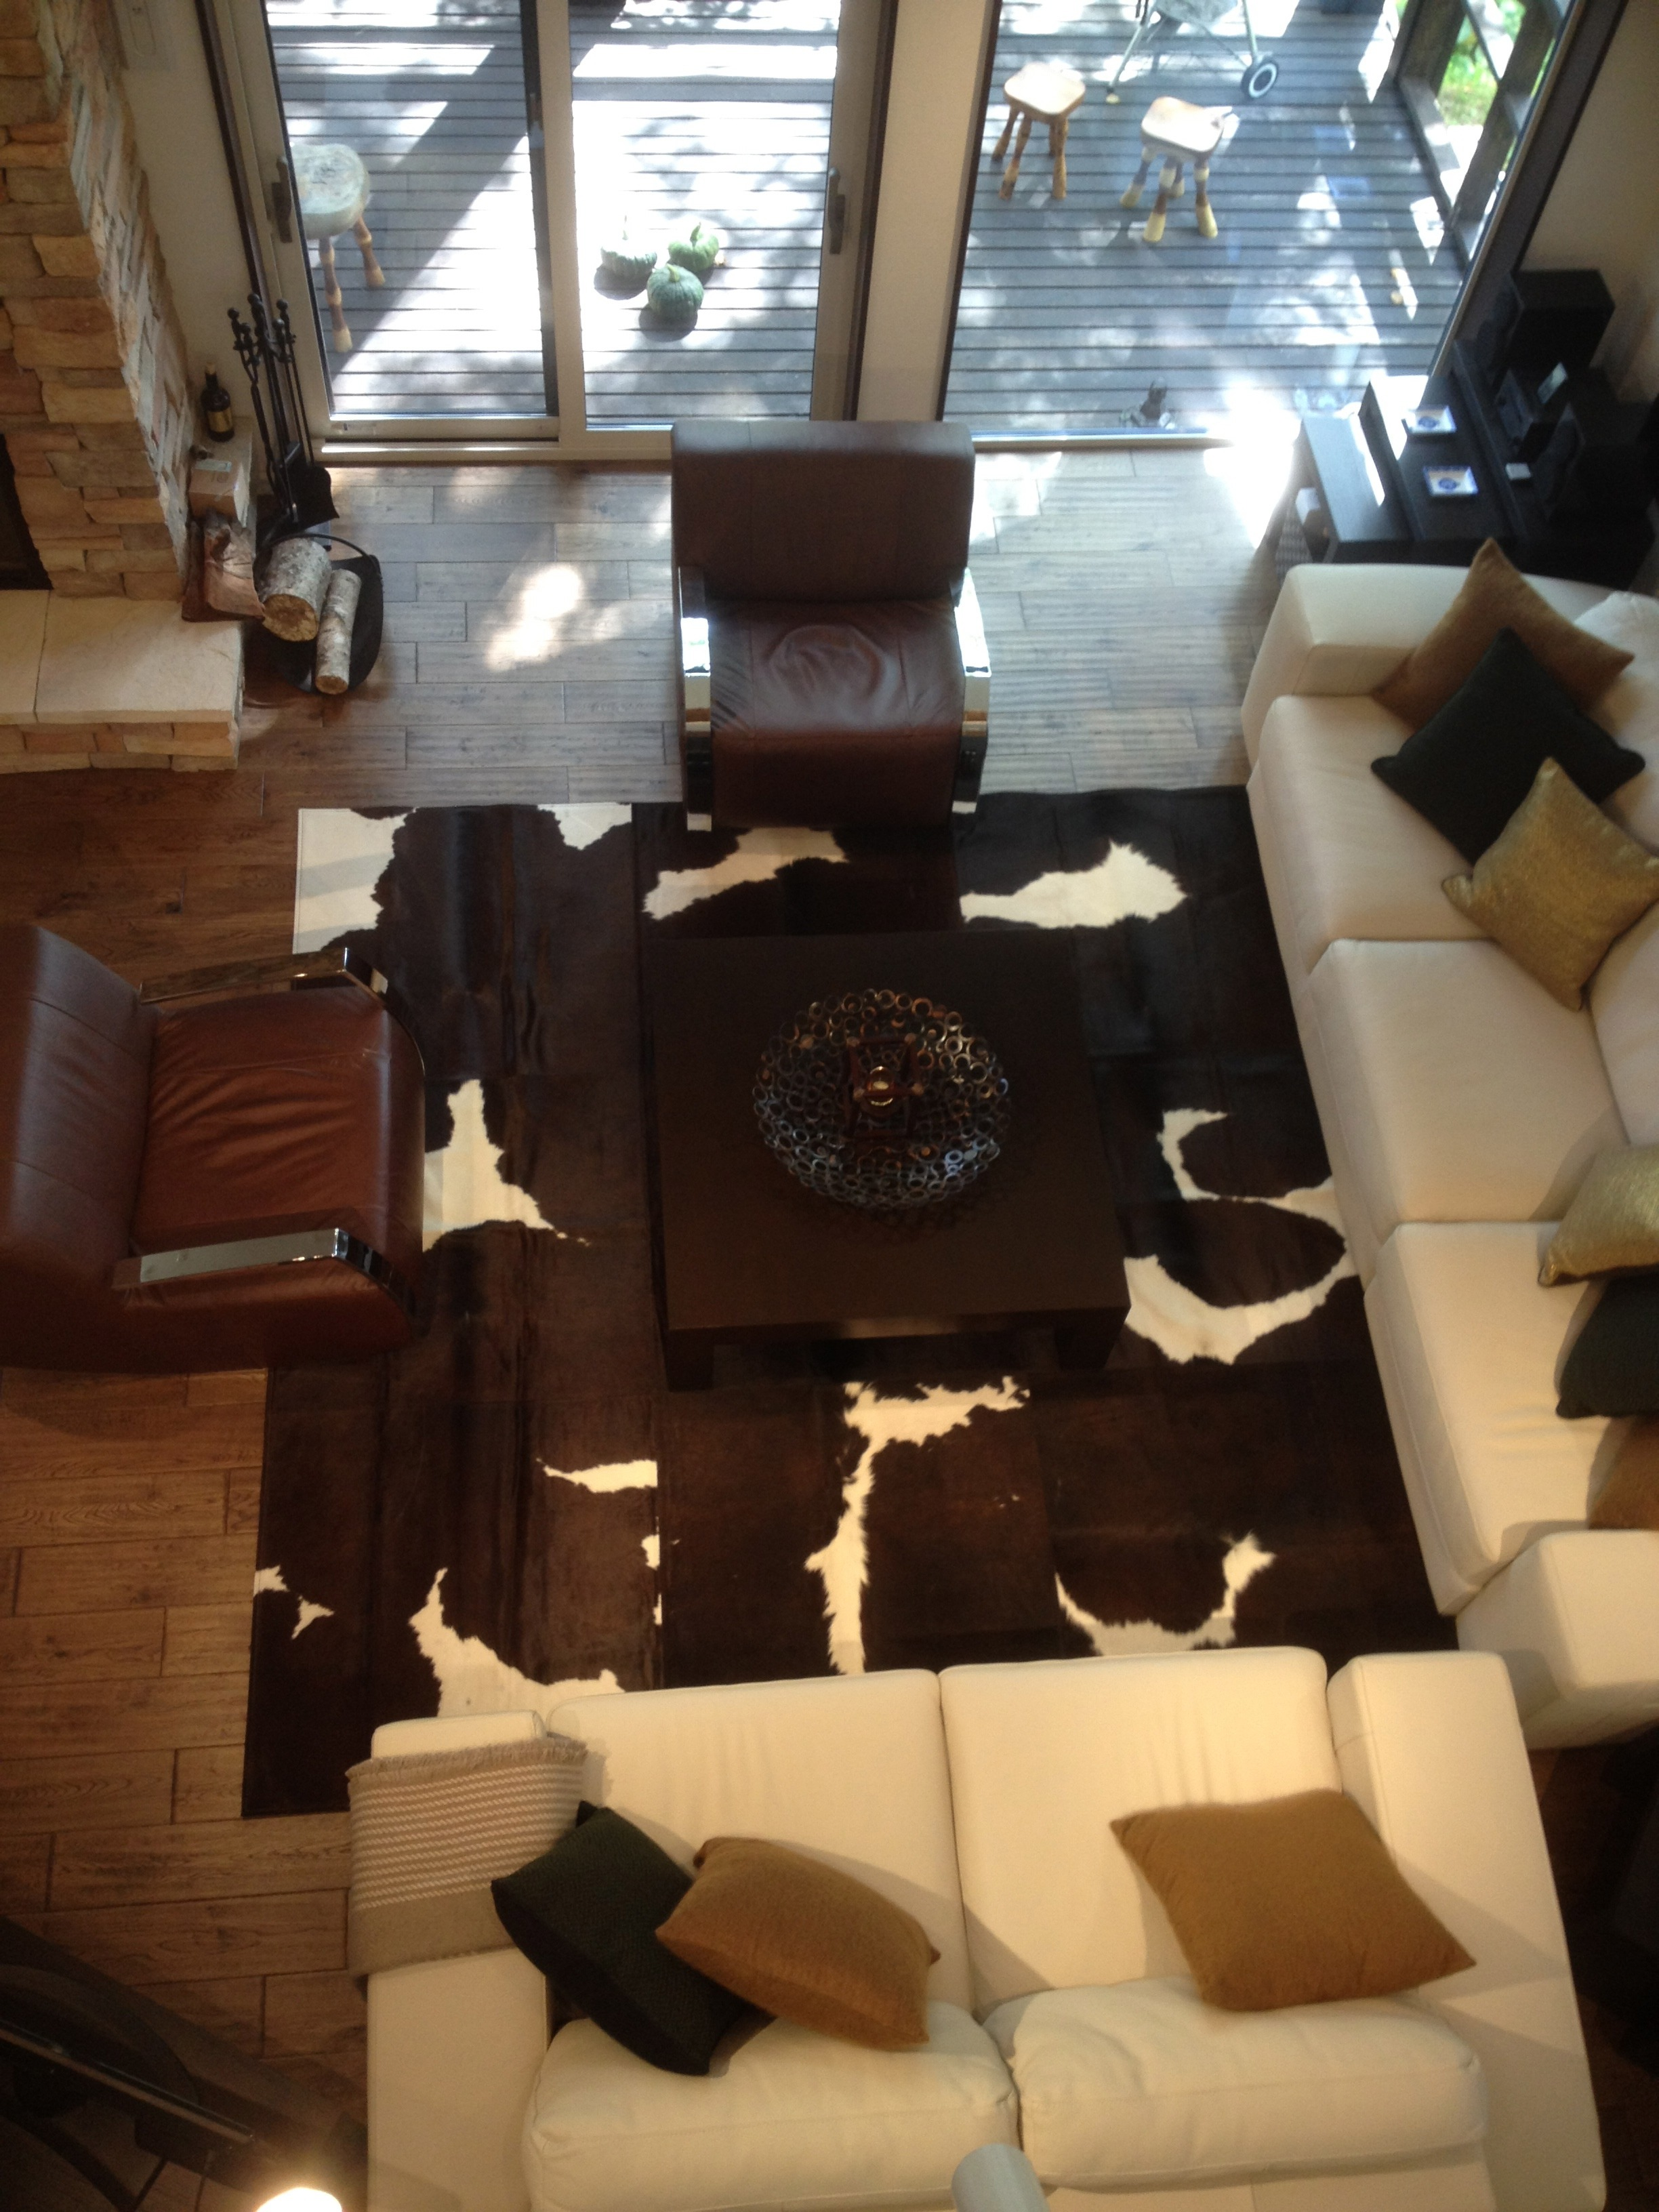 Cowhide rug from above